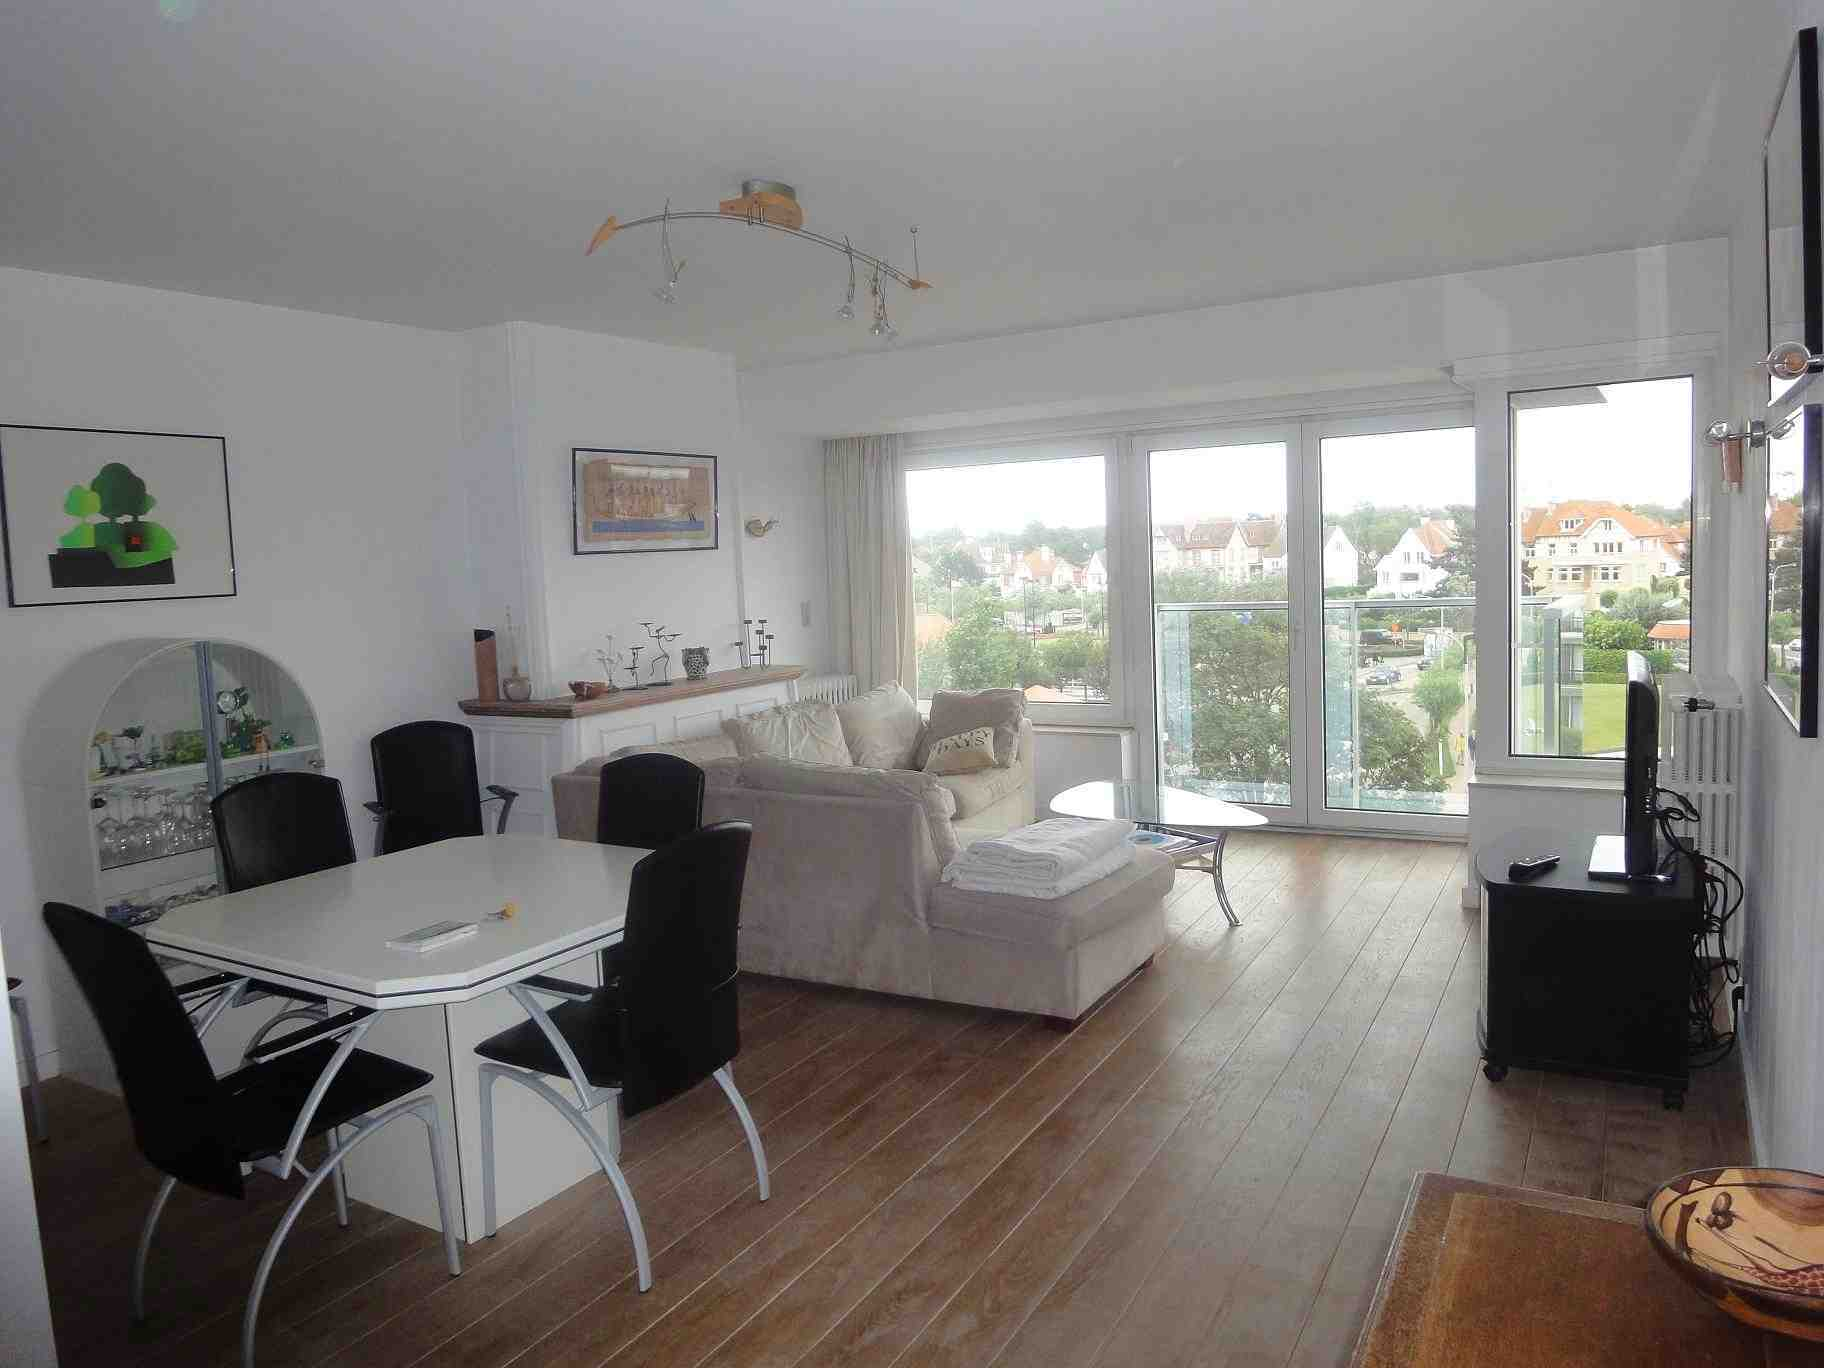 Plein sud location d 39 un appartement knokke le zoute for Photo salon dappartement